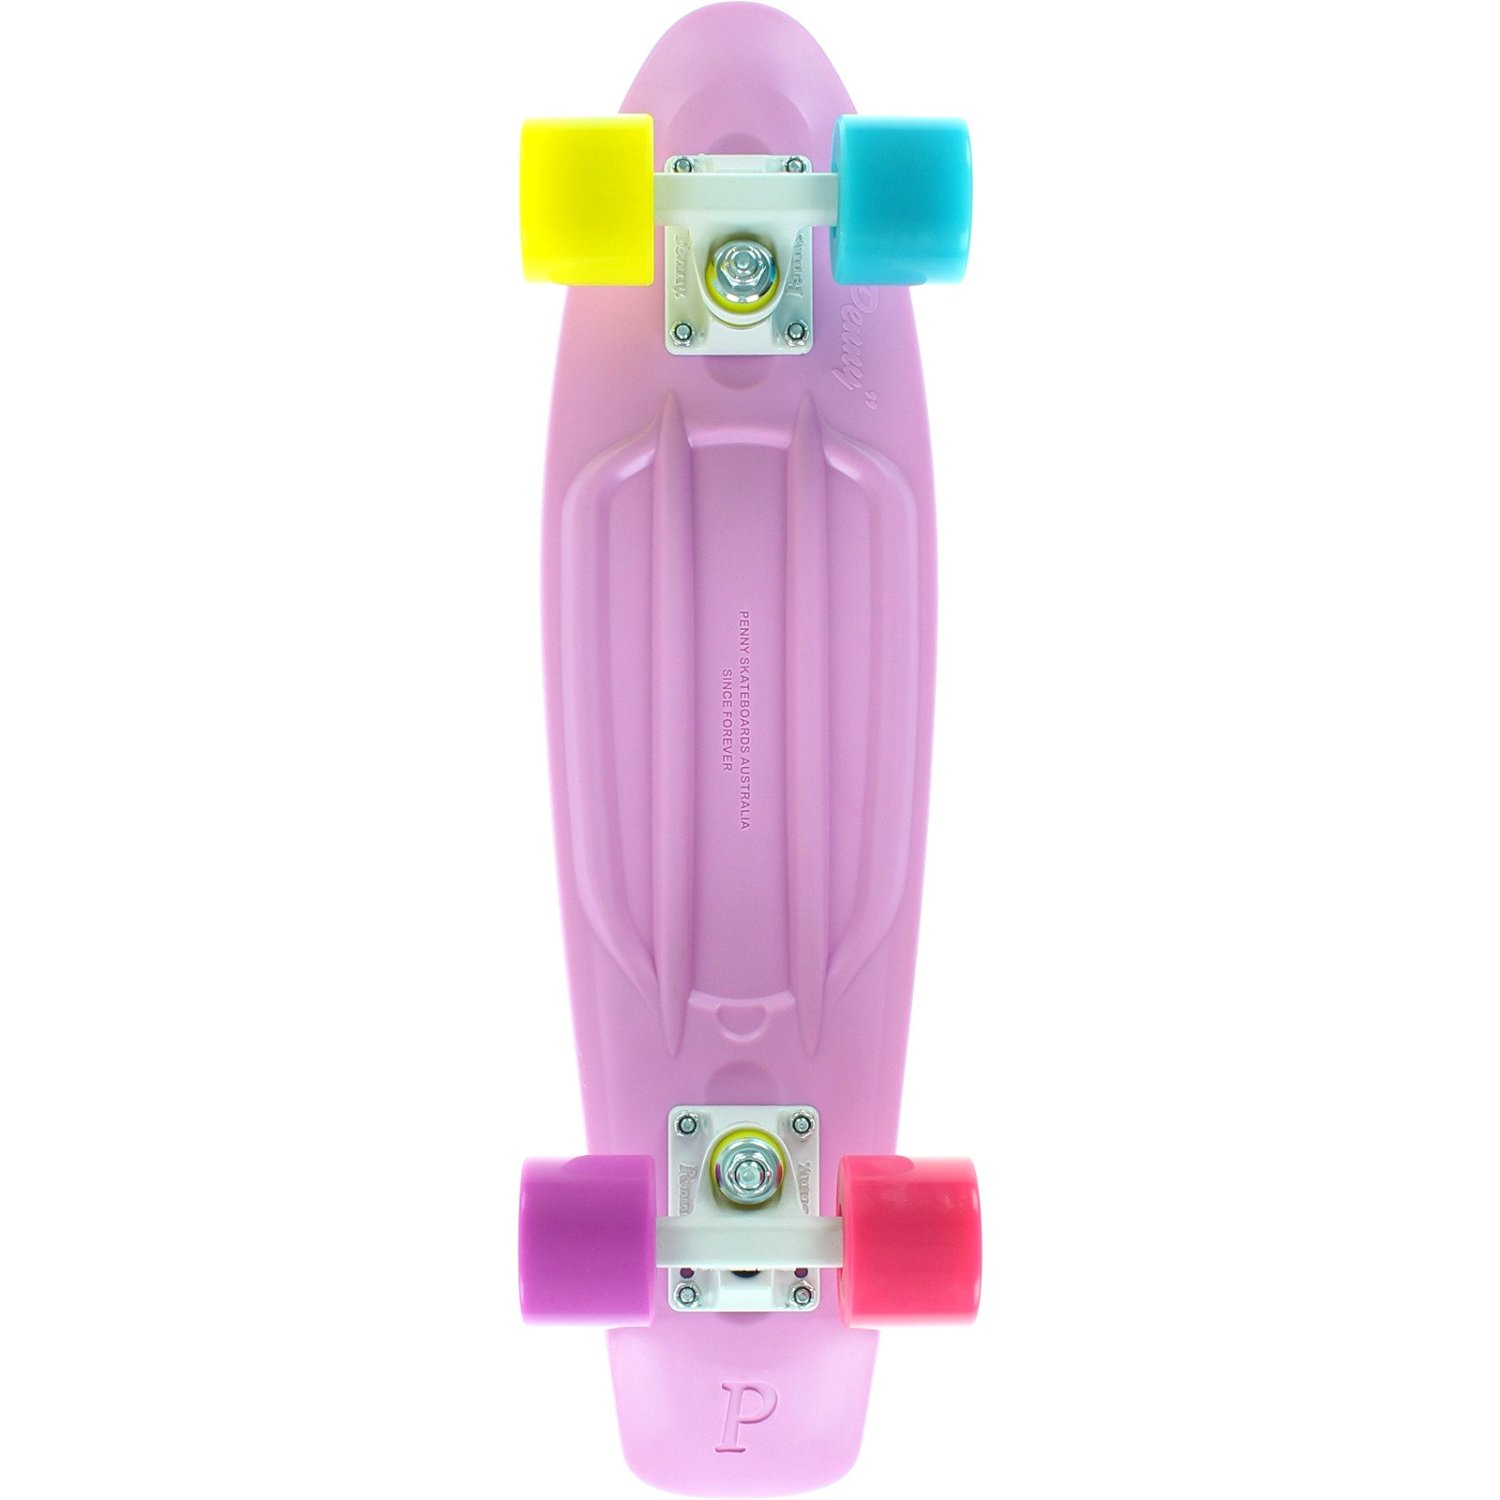 "Penny Skateboards Candy Coated Lilac 22"" Complete Skateboard - 6"" x 22"""